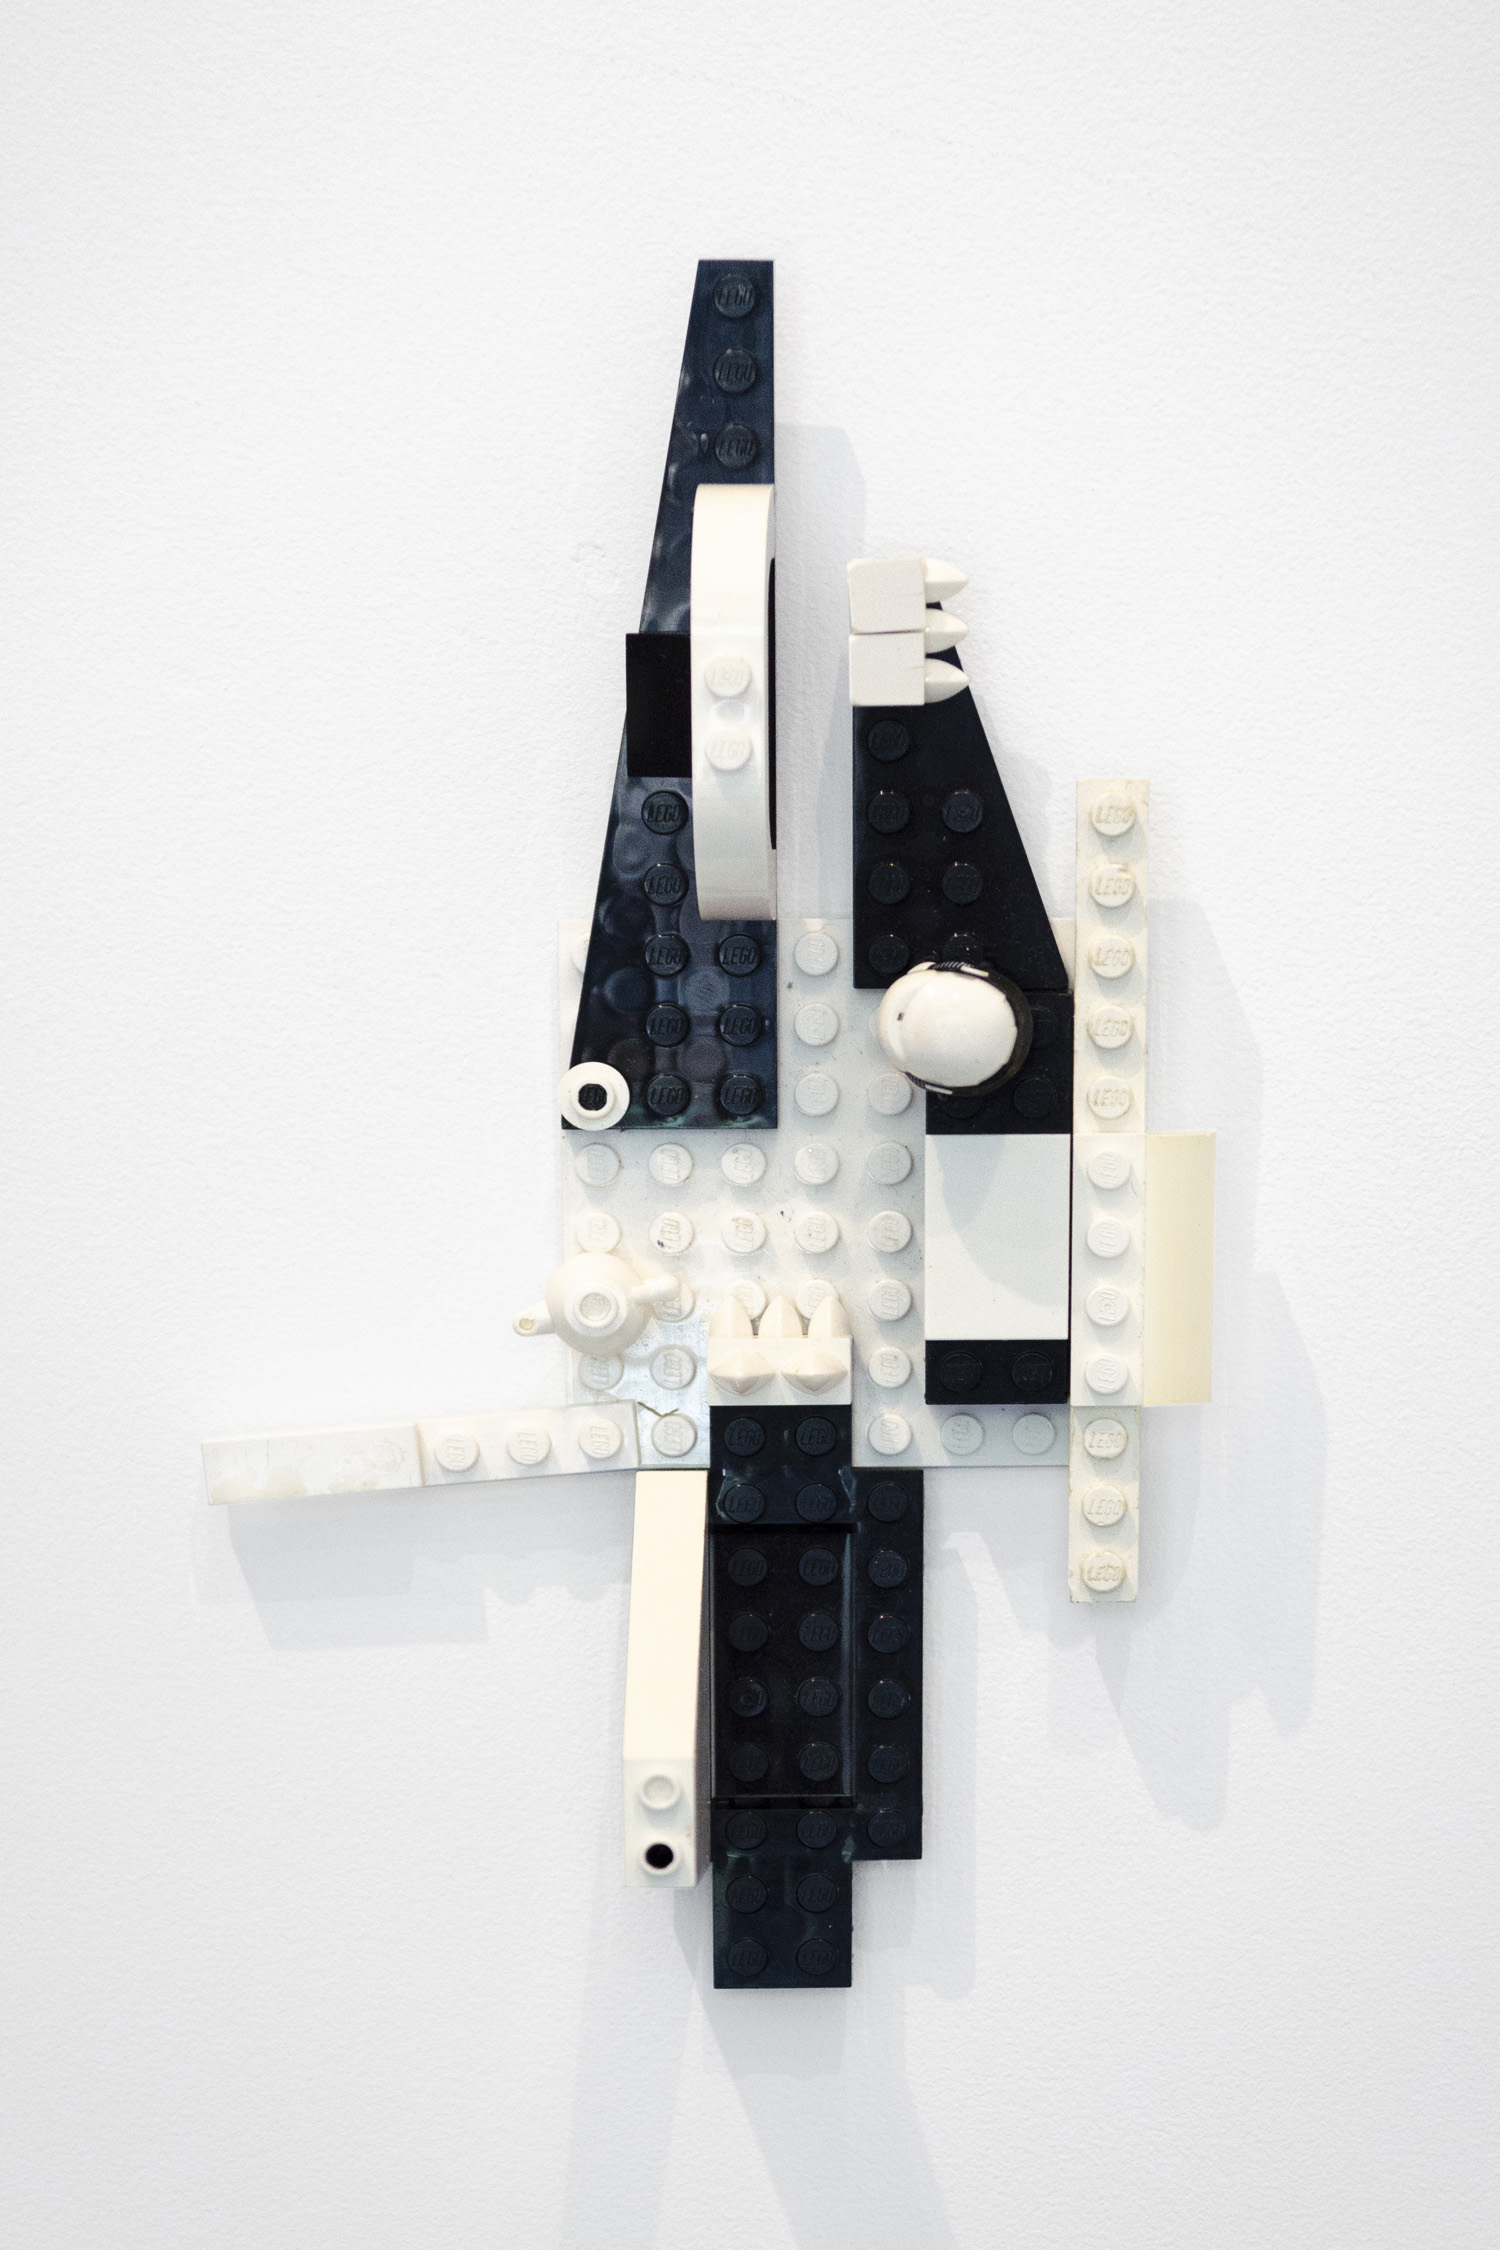 Marlowe Broomberg   Lego Painting #13 (from Lego Paintings Series) , 2019 Lego pieces 8 x 3 x 2.5 inches (20.5 x 7.5 x 6 cm) Unique edition  Starting bid: $20